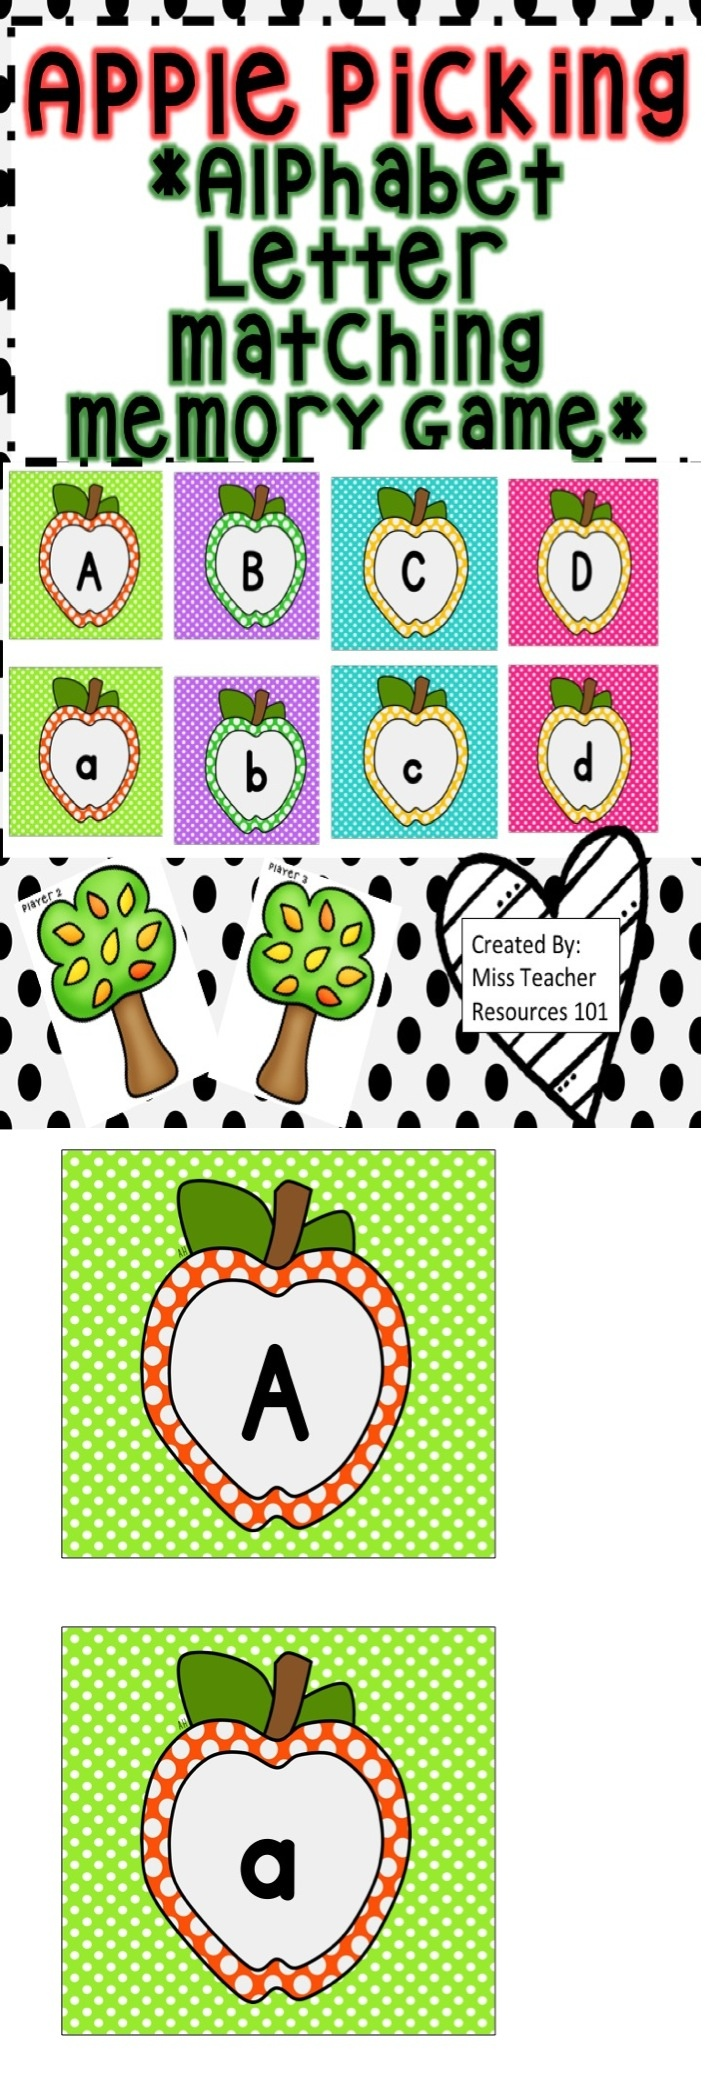 This is a FREE alphabet memory match center game ideal for pre-school, kindergarten, low-performing first graders, and ELL students. It is a colorful matching game that is used to match an uppercase letter with the corresponding lowercase letter.